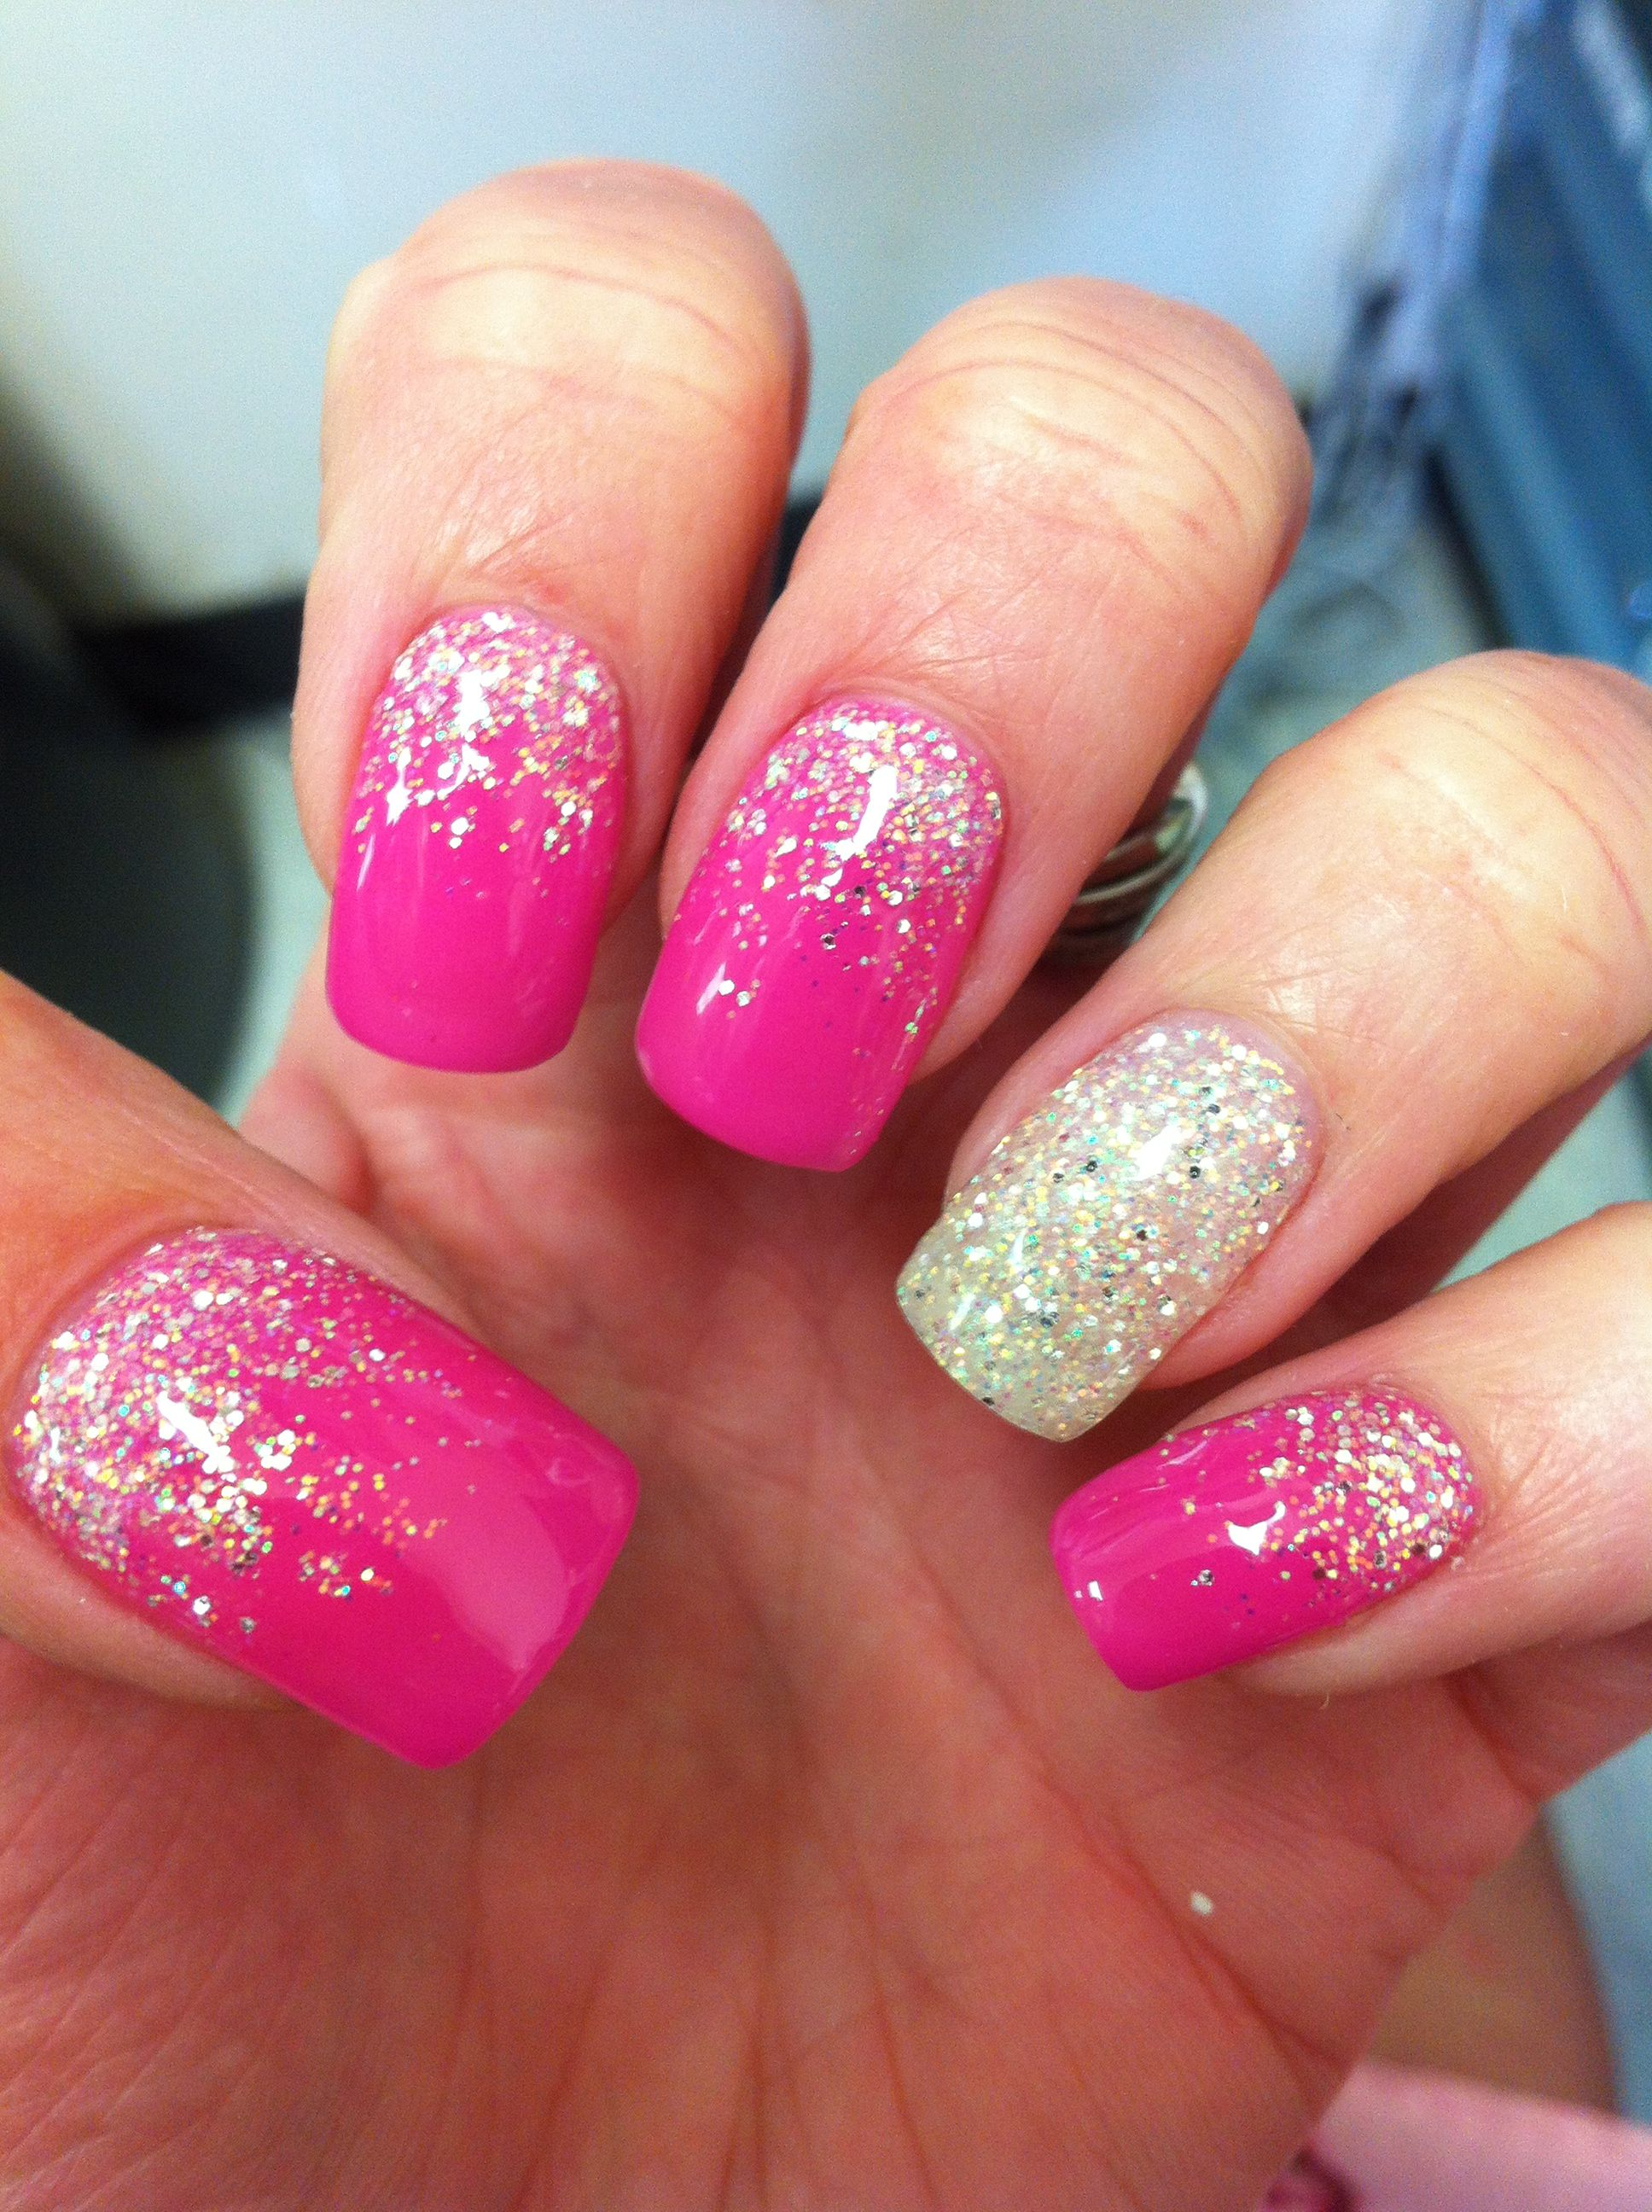 Gel nail art - Glitter fade done with INT\'s drama and Diamonds ...